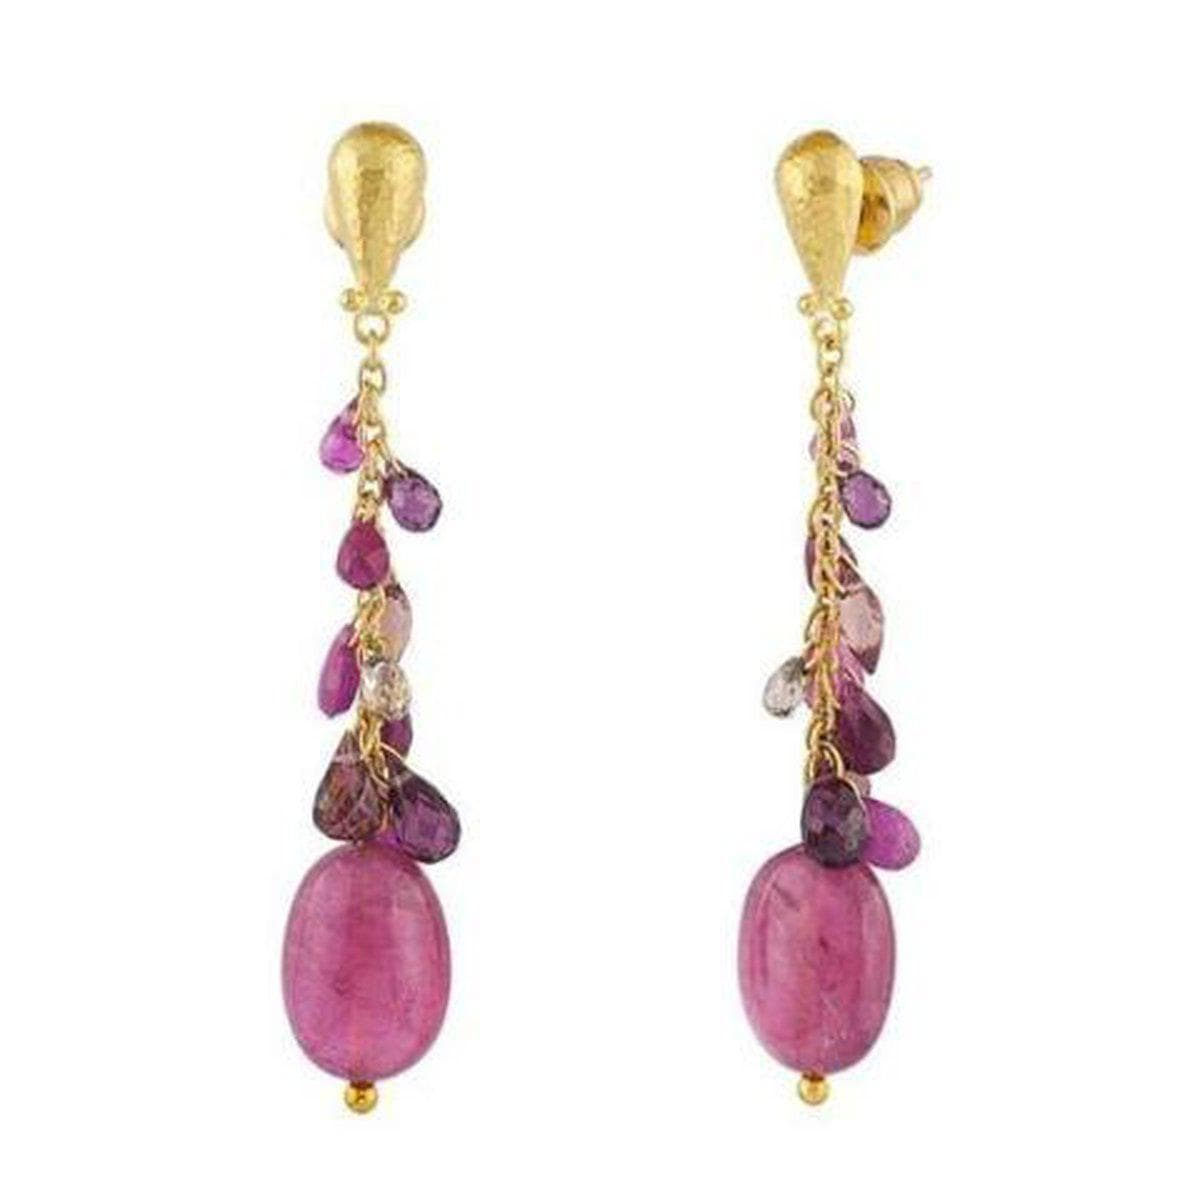 Delicate Hue 24K Gold Multi Stone Earrings - E-CLS2-PNK-BC-GURHAN-Renee Taylor Gallery